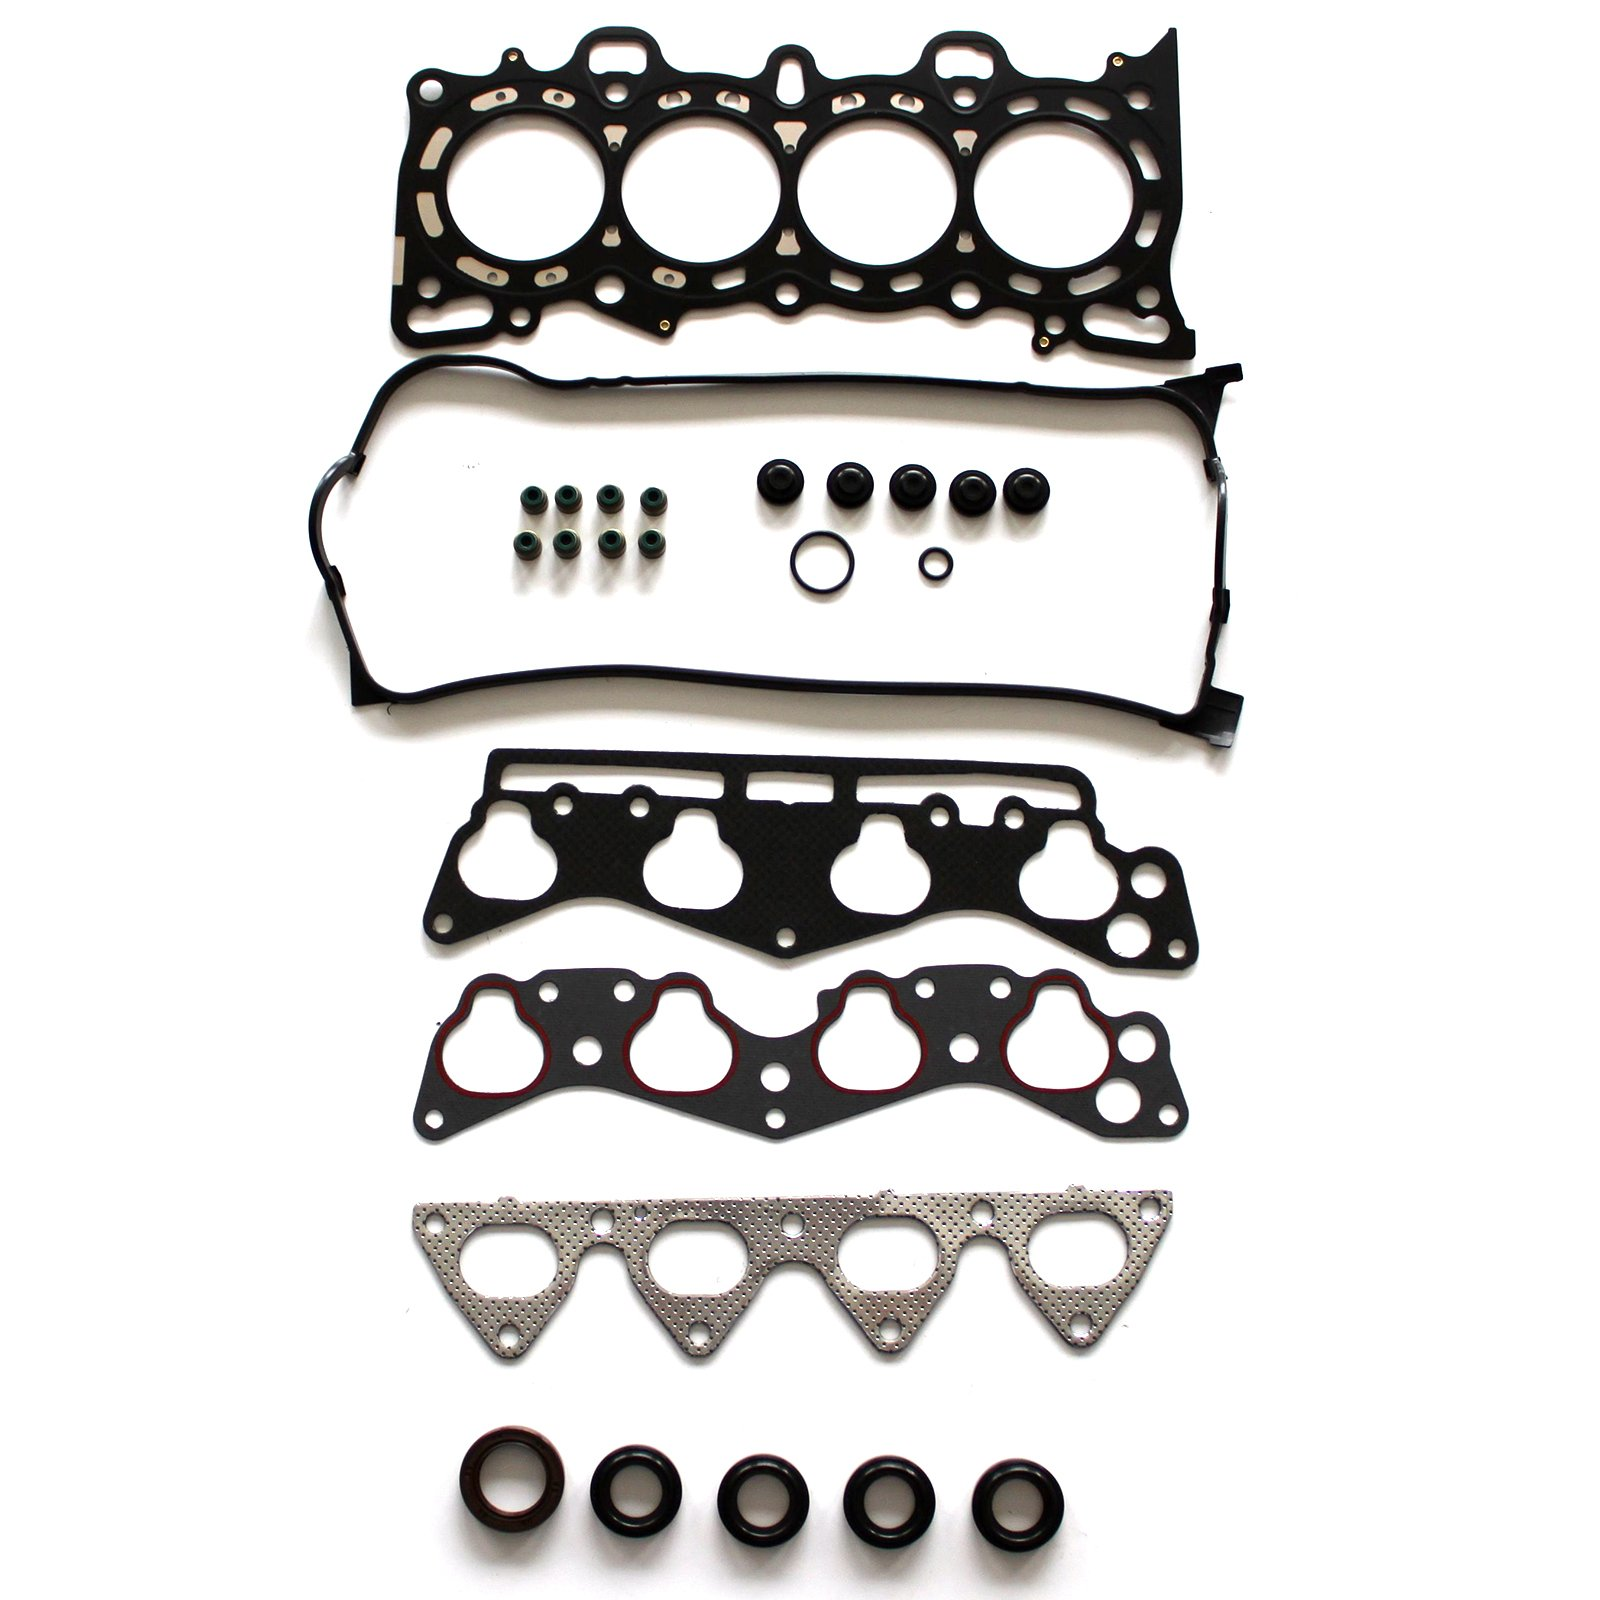 Cheap 1 6l Vtec Engine Find Deals On Line At 19962000 Honda Civic Electrical Troubleshooting Manual Original Get Quotations Head Gasket Sets Eccpp Automotive Replacement Cylinder Gaskets For 1996 2000